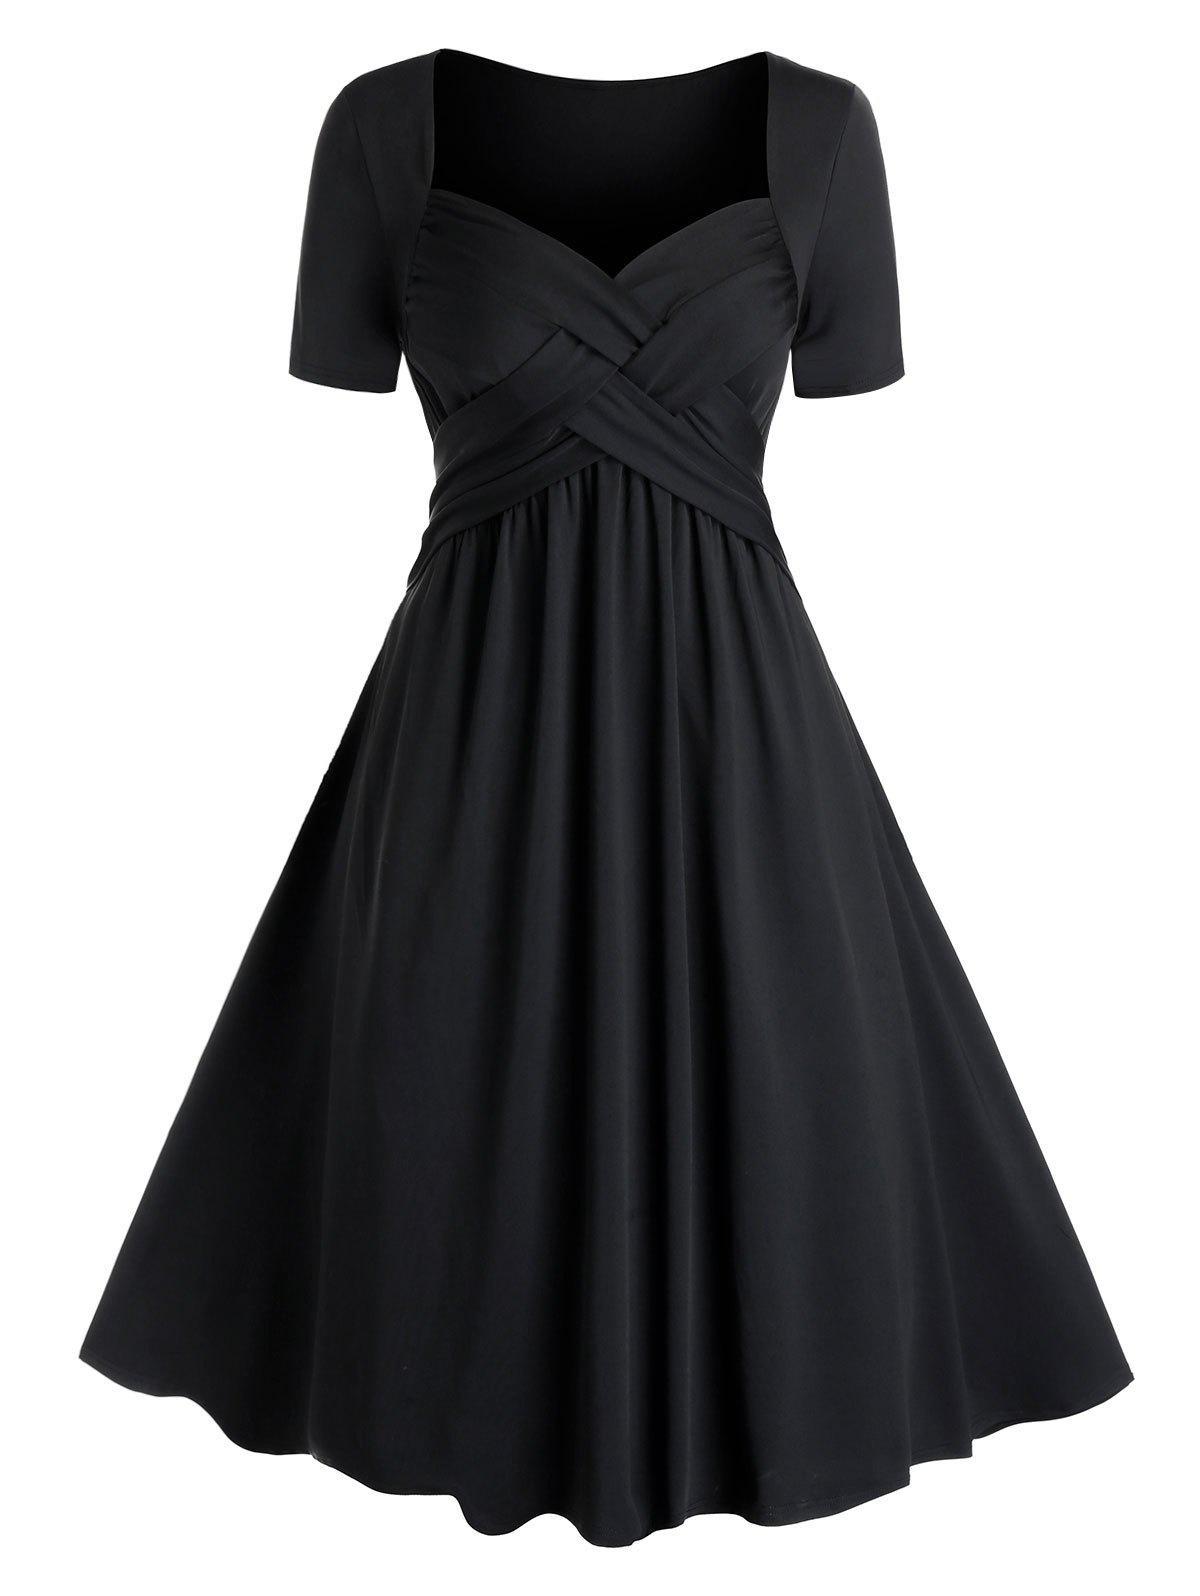 Plus Size Crossover Fit and Flare Dress - BLACK 3X